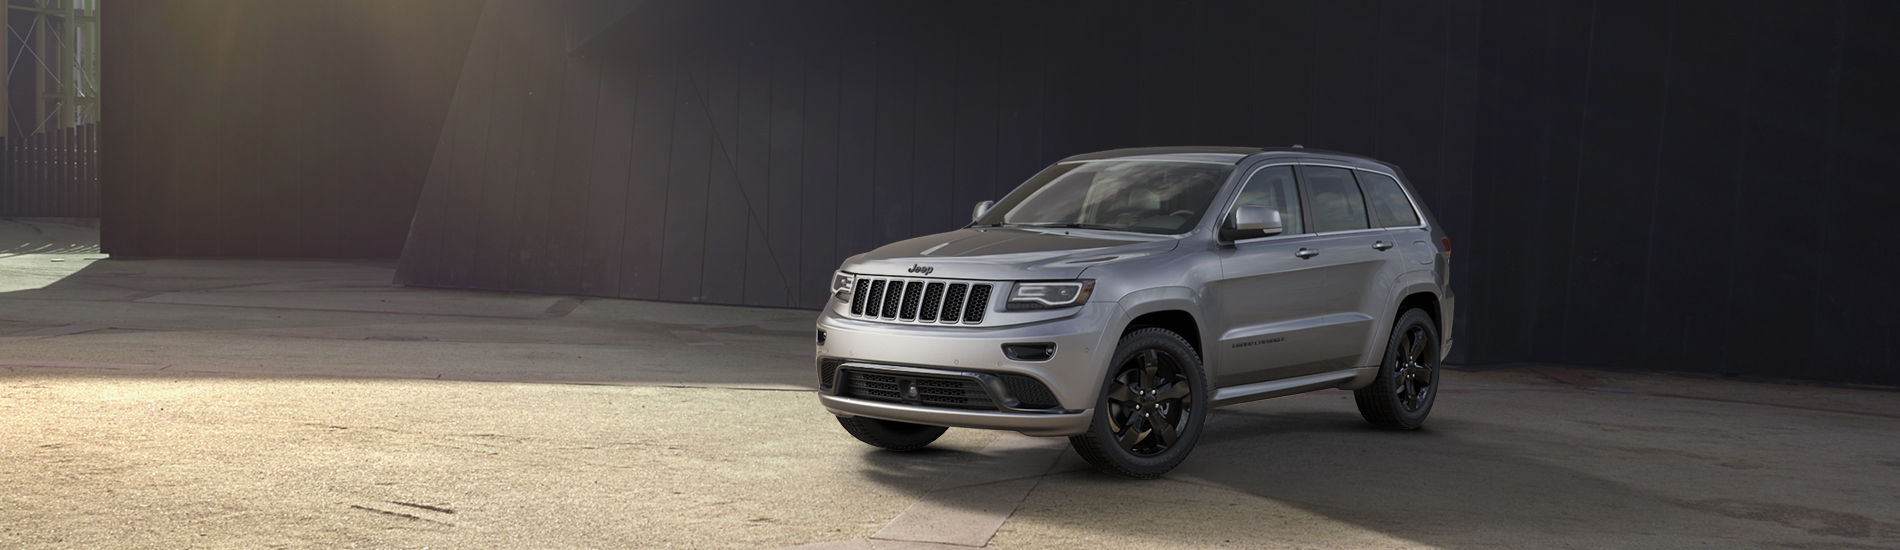 New Jeep Grand Cherokee For Sale Medford MA